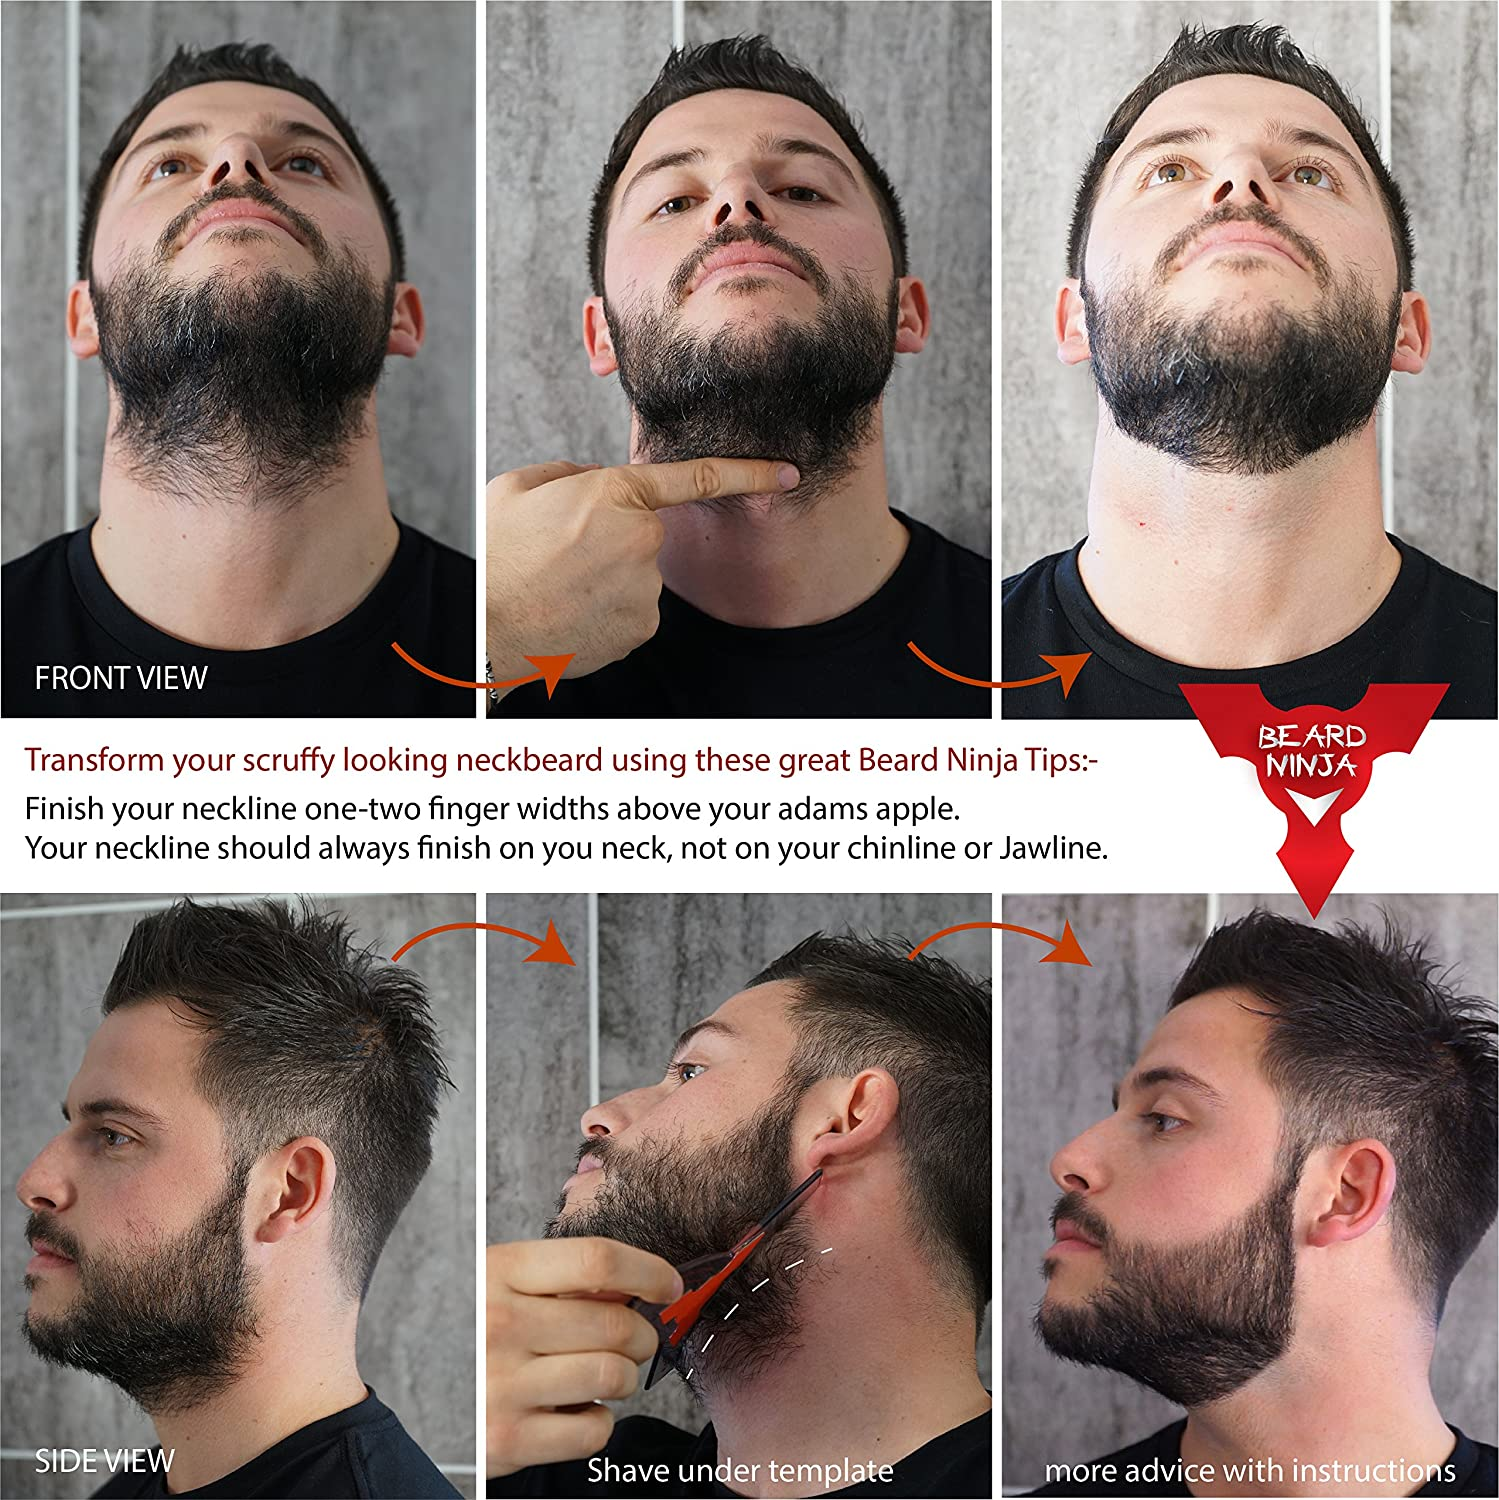 New Groomarang Beard Styling And Shaping Template B Tool Perfect Lines Symmetry Shape Face Neck